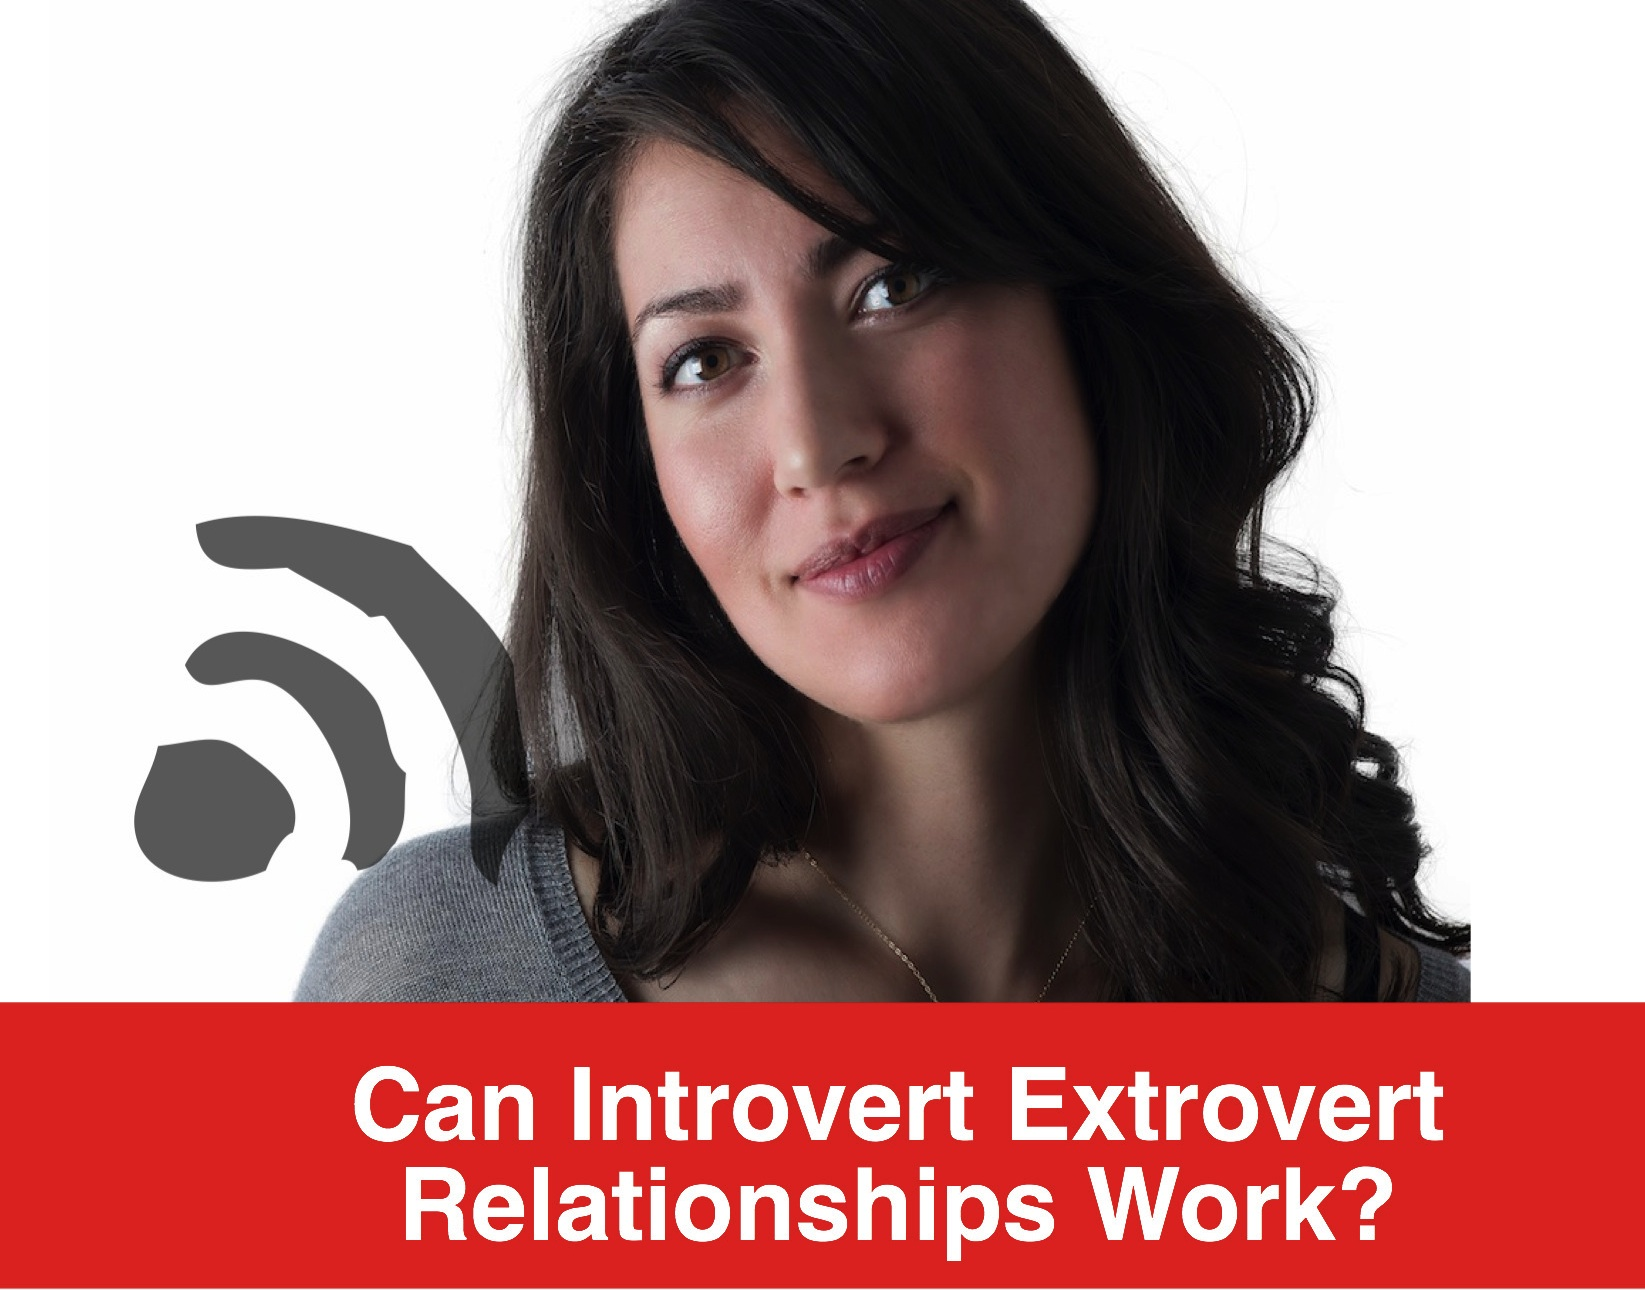 Dating an extrovert woman